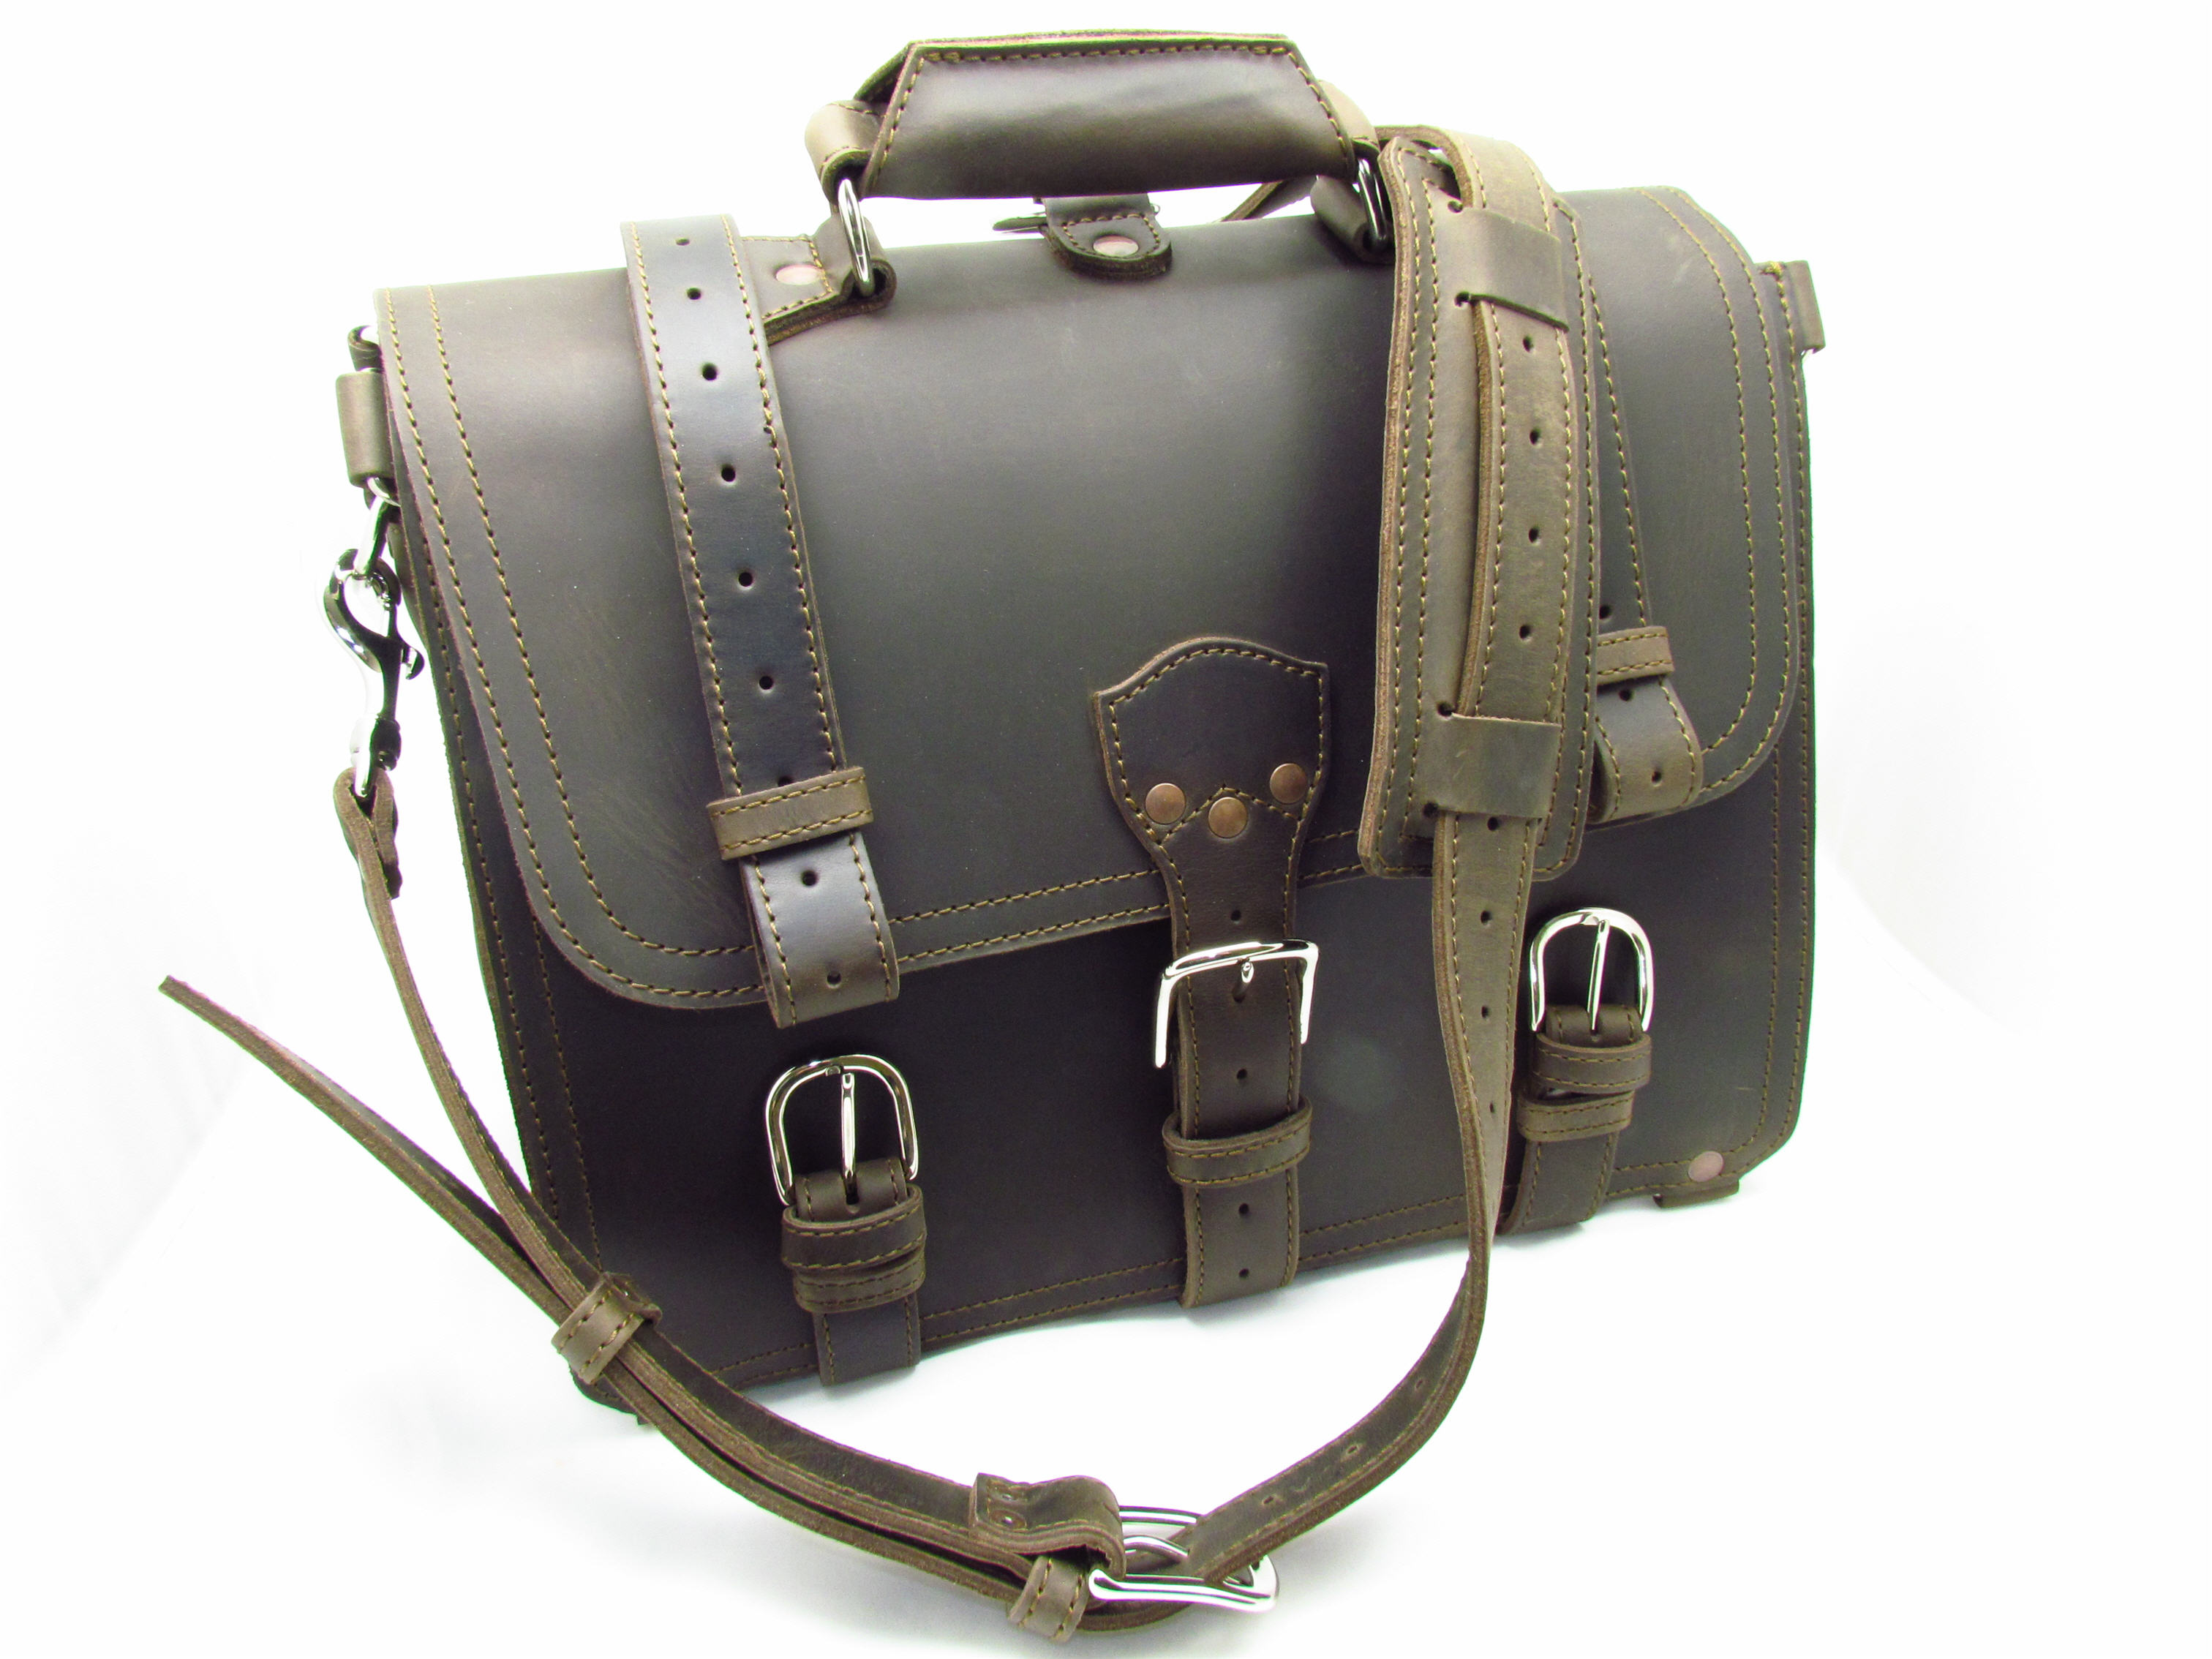 85e1a6fc4a1a Saddleback Leather Classic Briefcase Size one size - Bags   Luggage for Sale  - Grailed